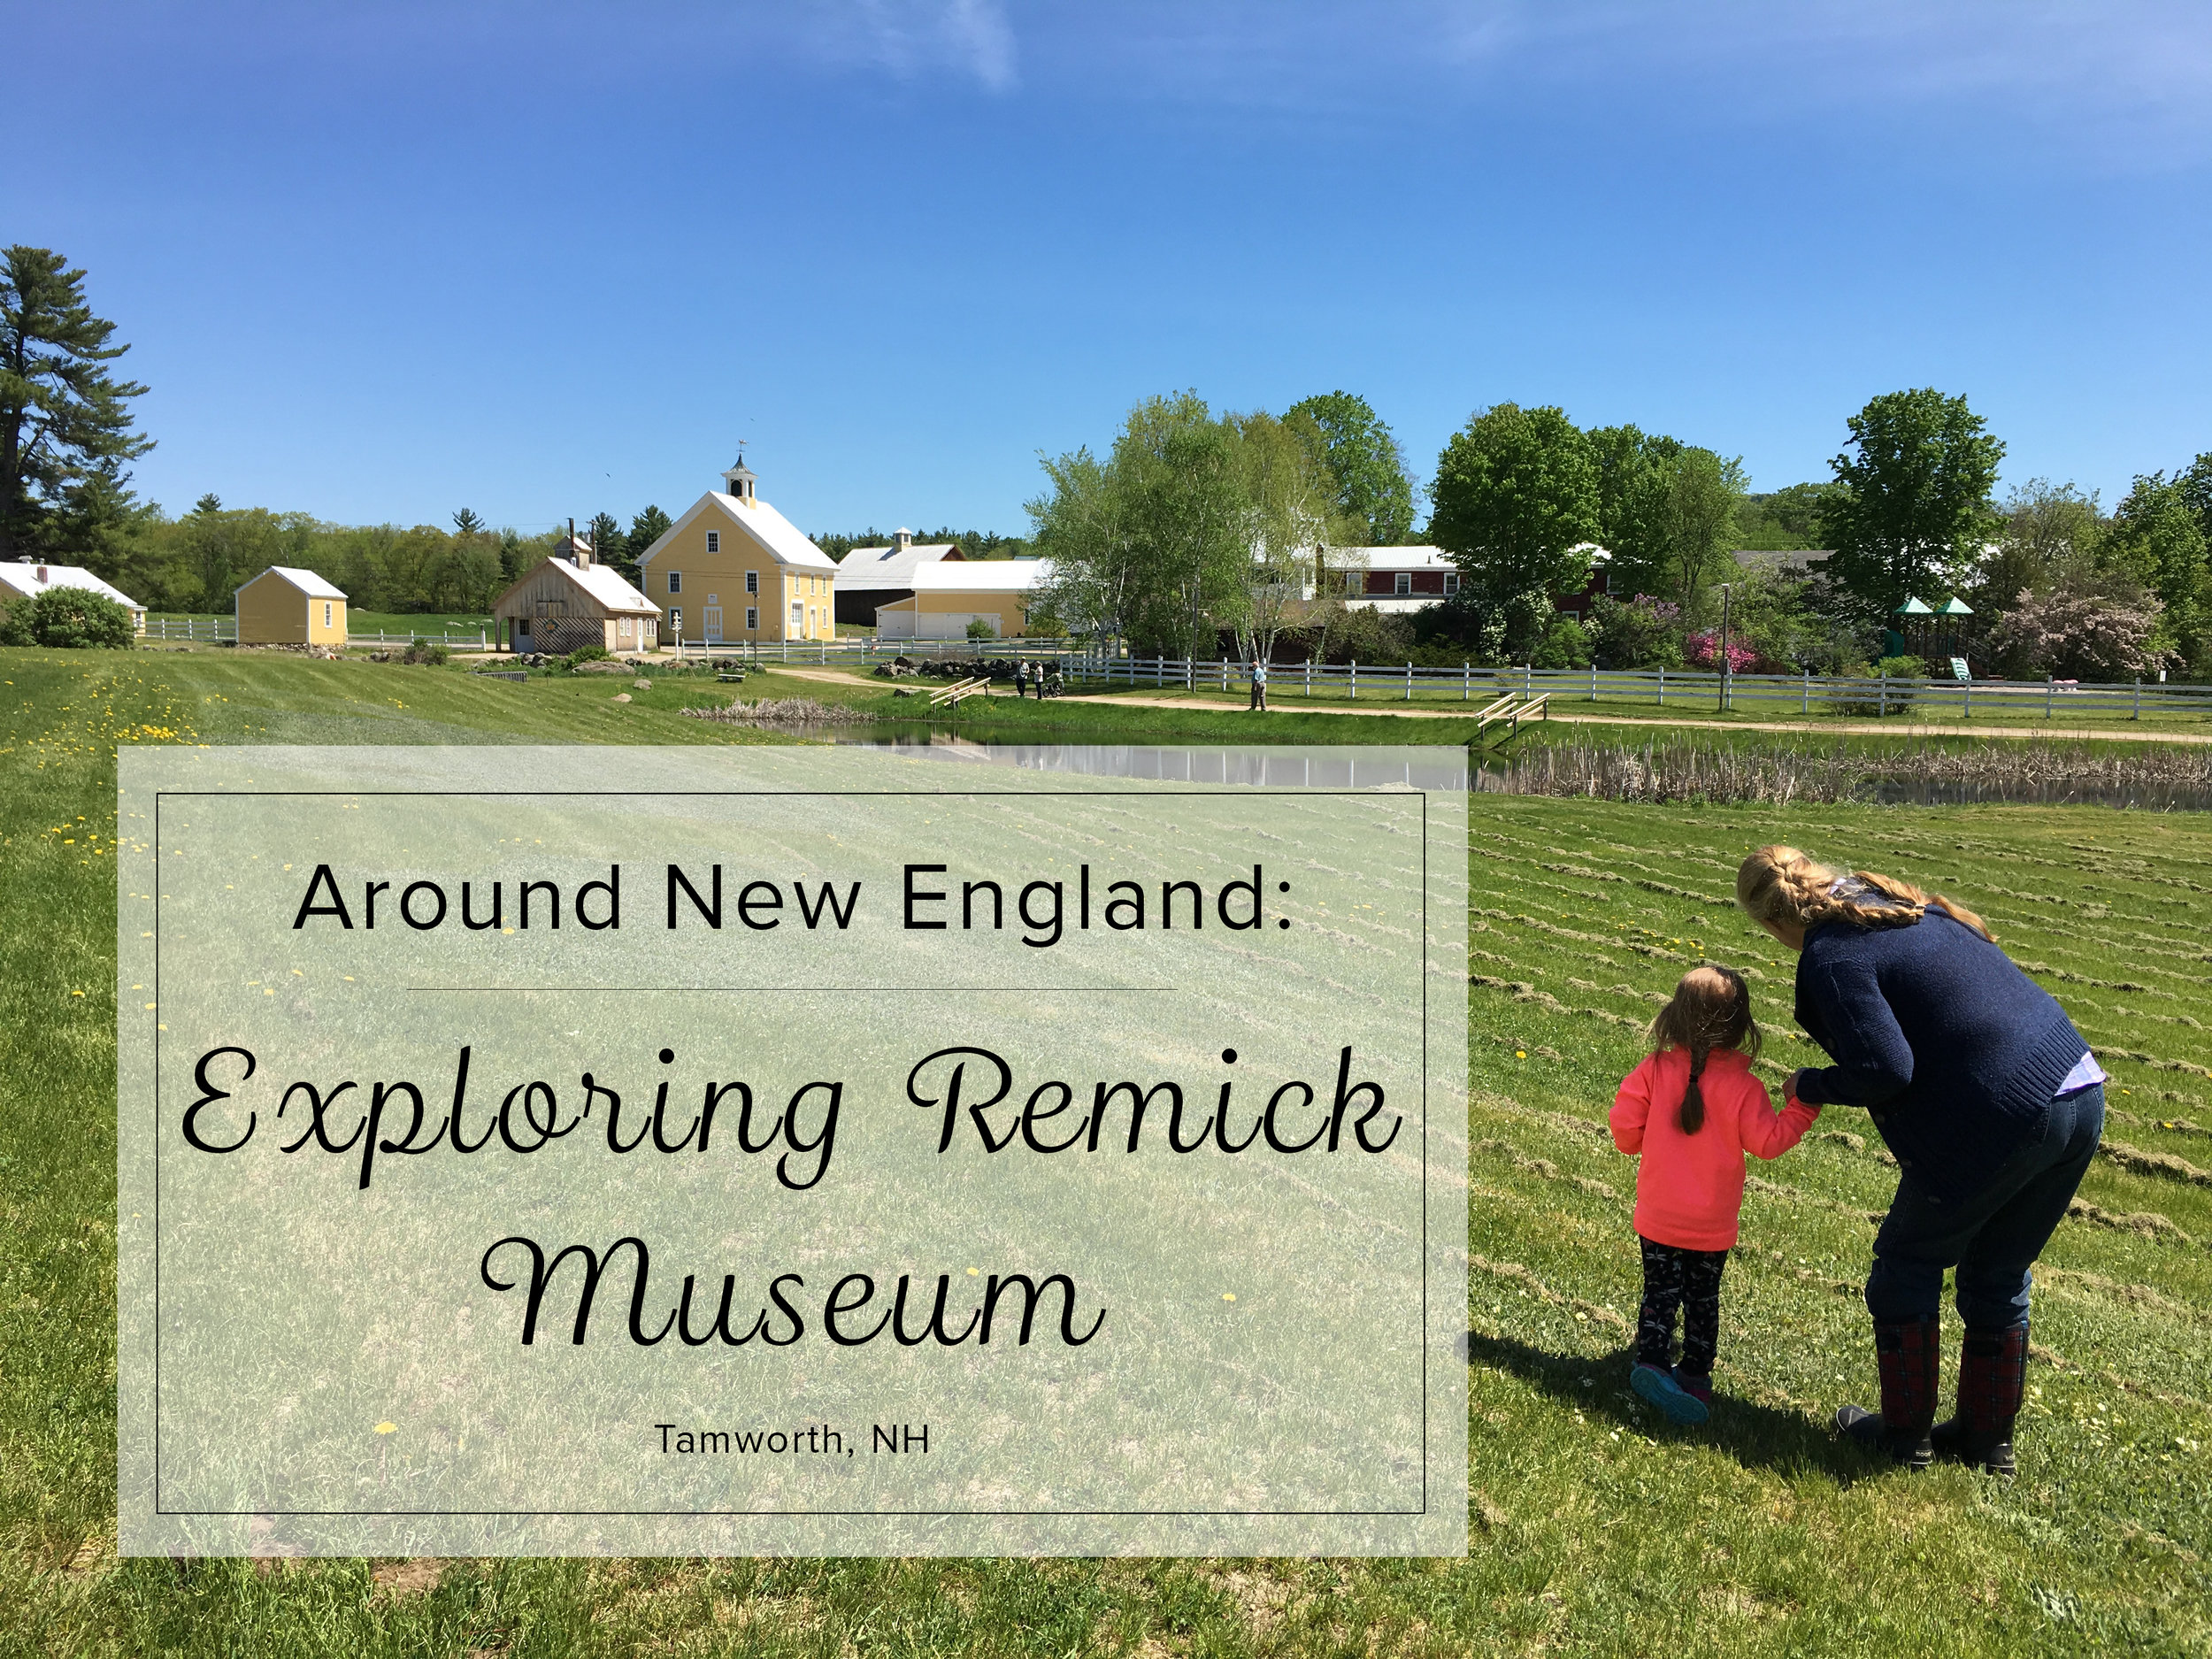 Exploring Remick Country Doctor and Farm Museum - Tamworth, NH